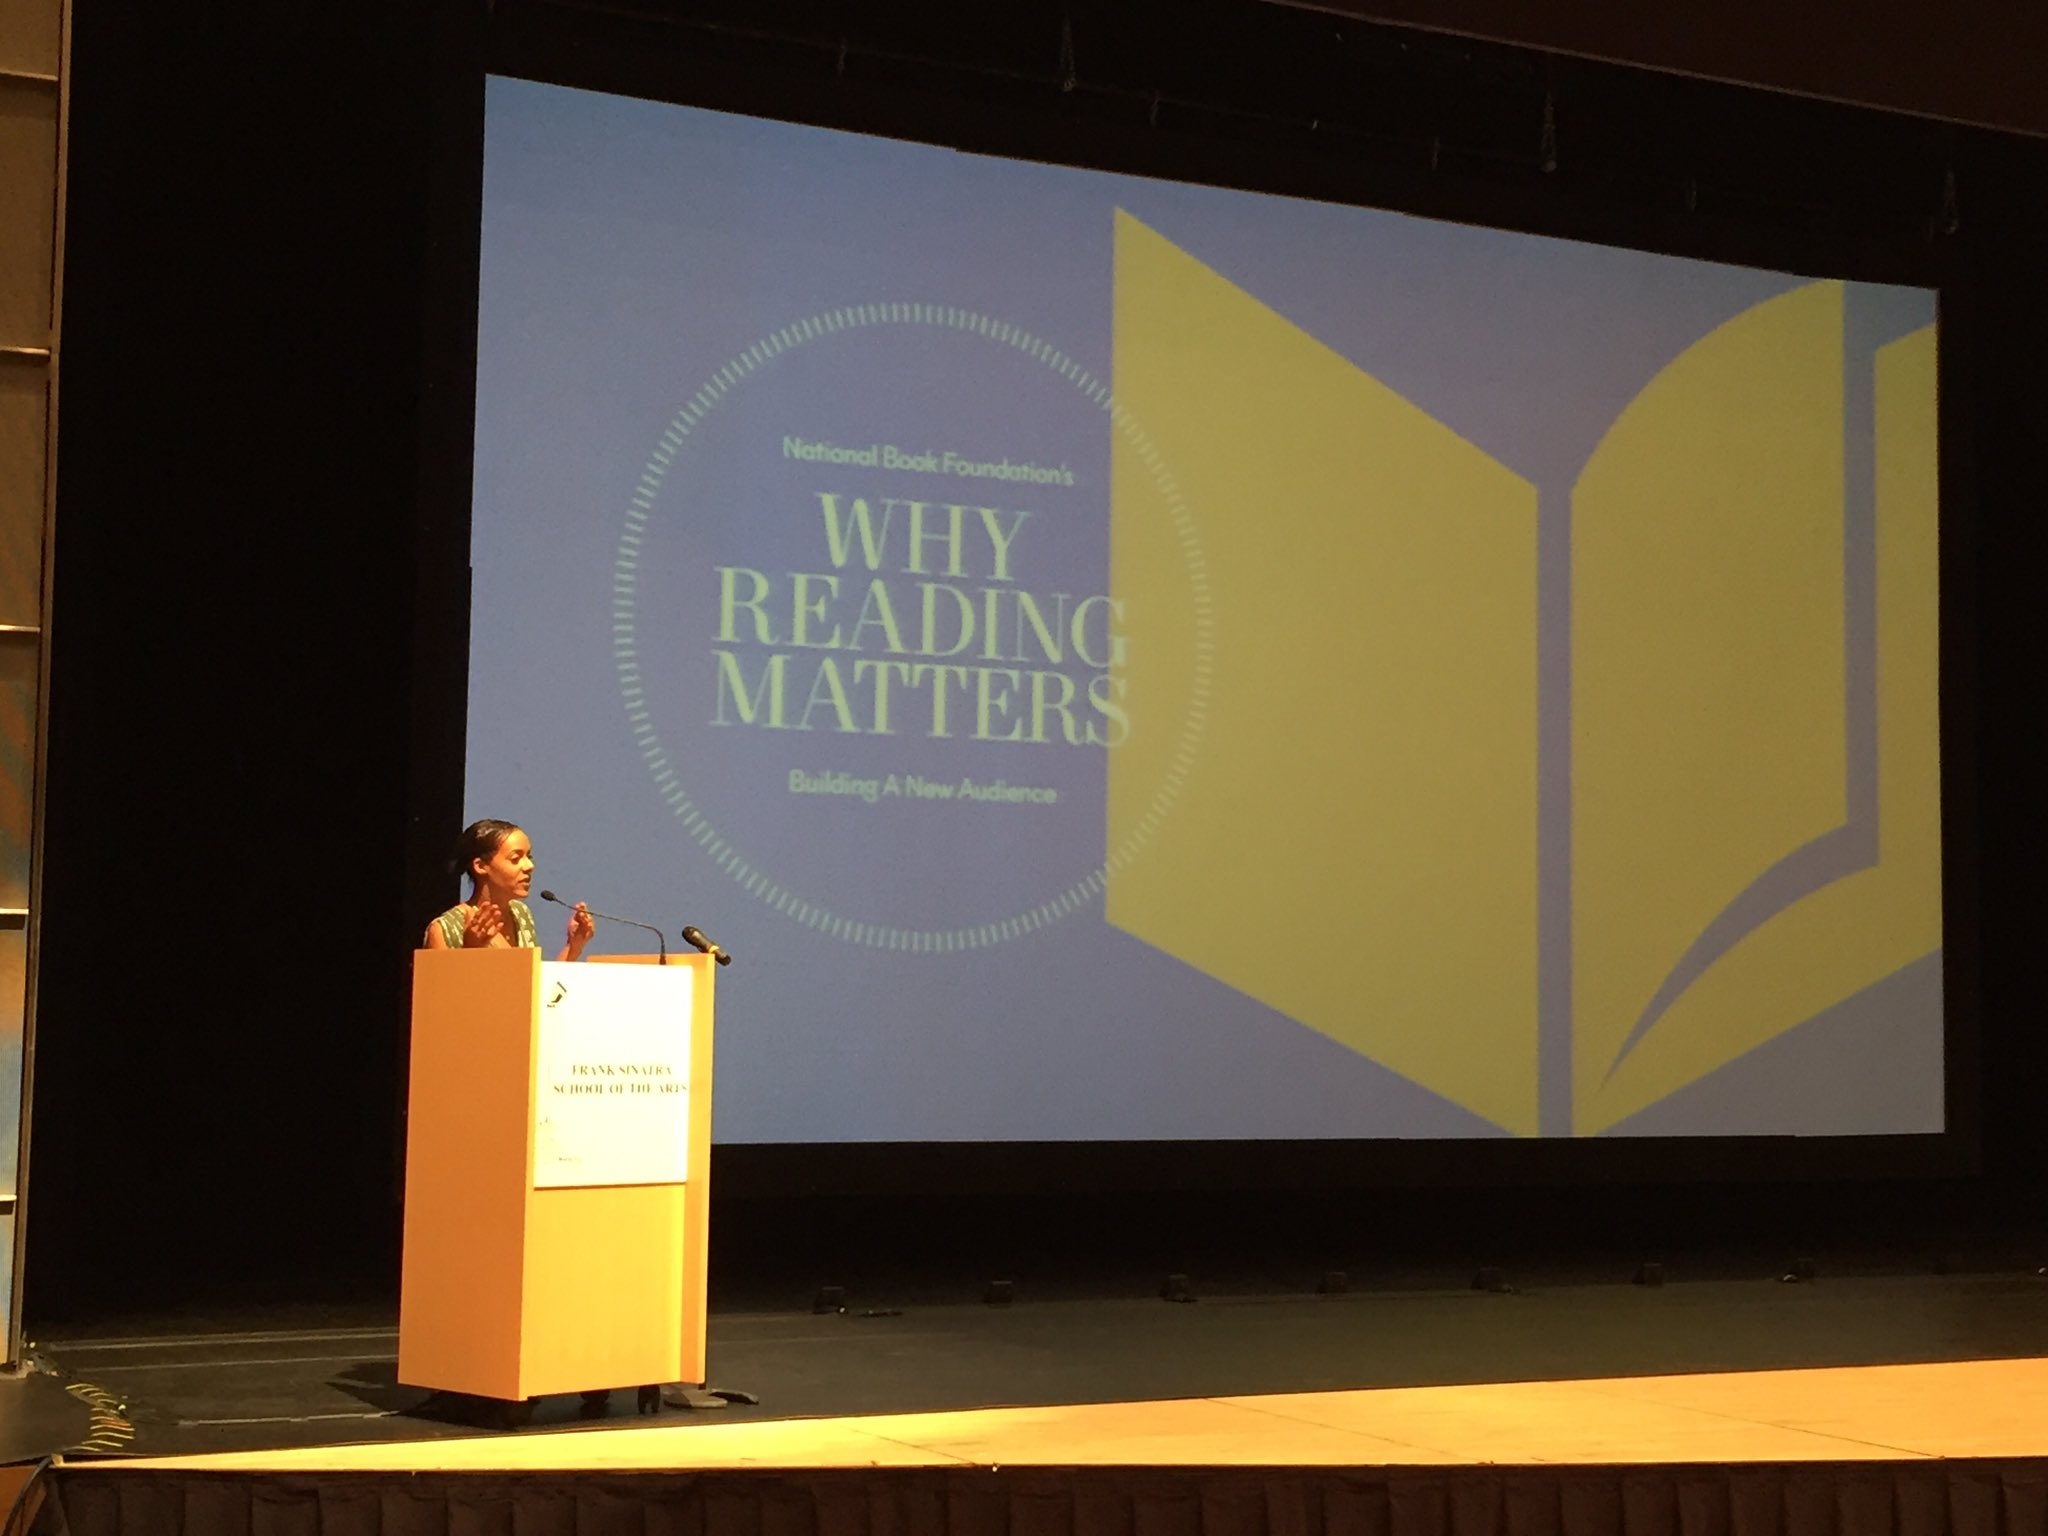 Our Executive Director, @likaluca, welcomes everyone to the second annual Why #ReadingMatters conference. https://t.co/wZQiBYxtYf